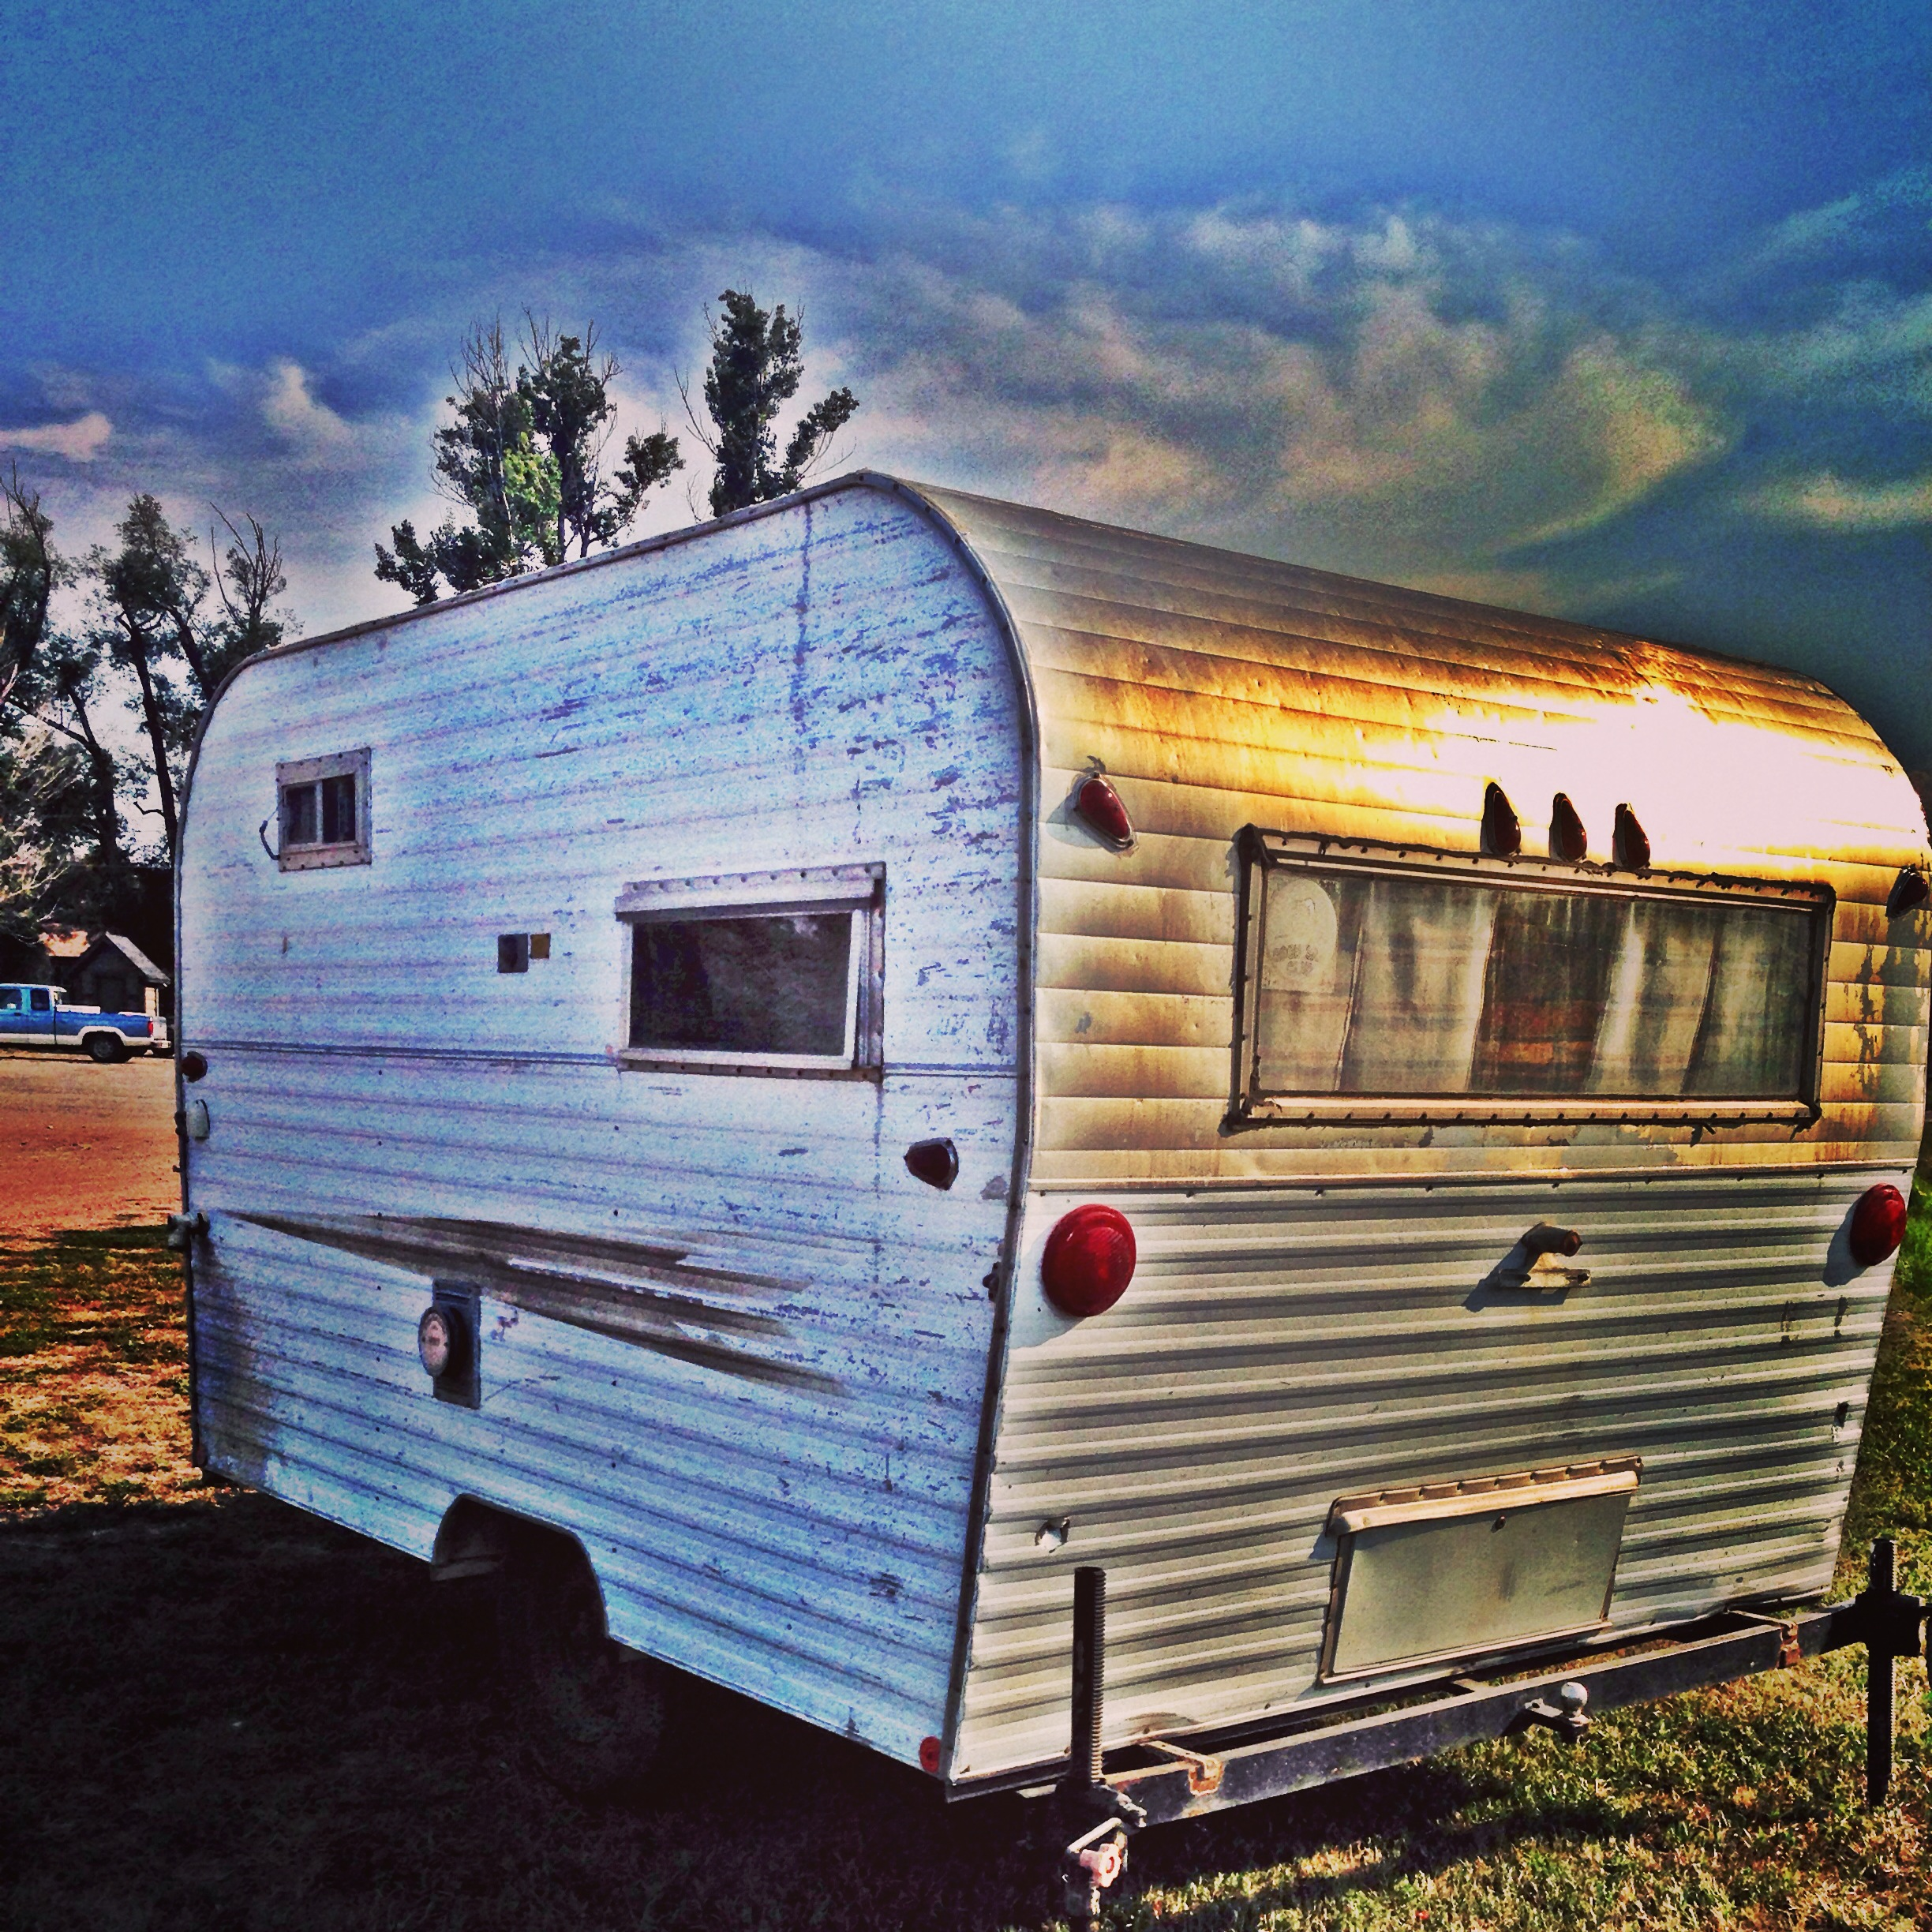 Travel Trailers With Outdoor Kitchens: Renovating A Vintage 1969 RoadRunner Travel Trailer